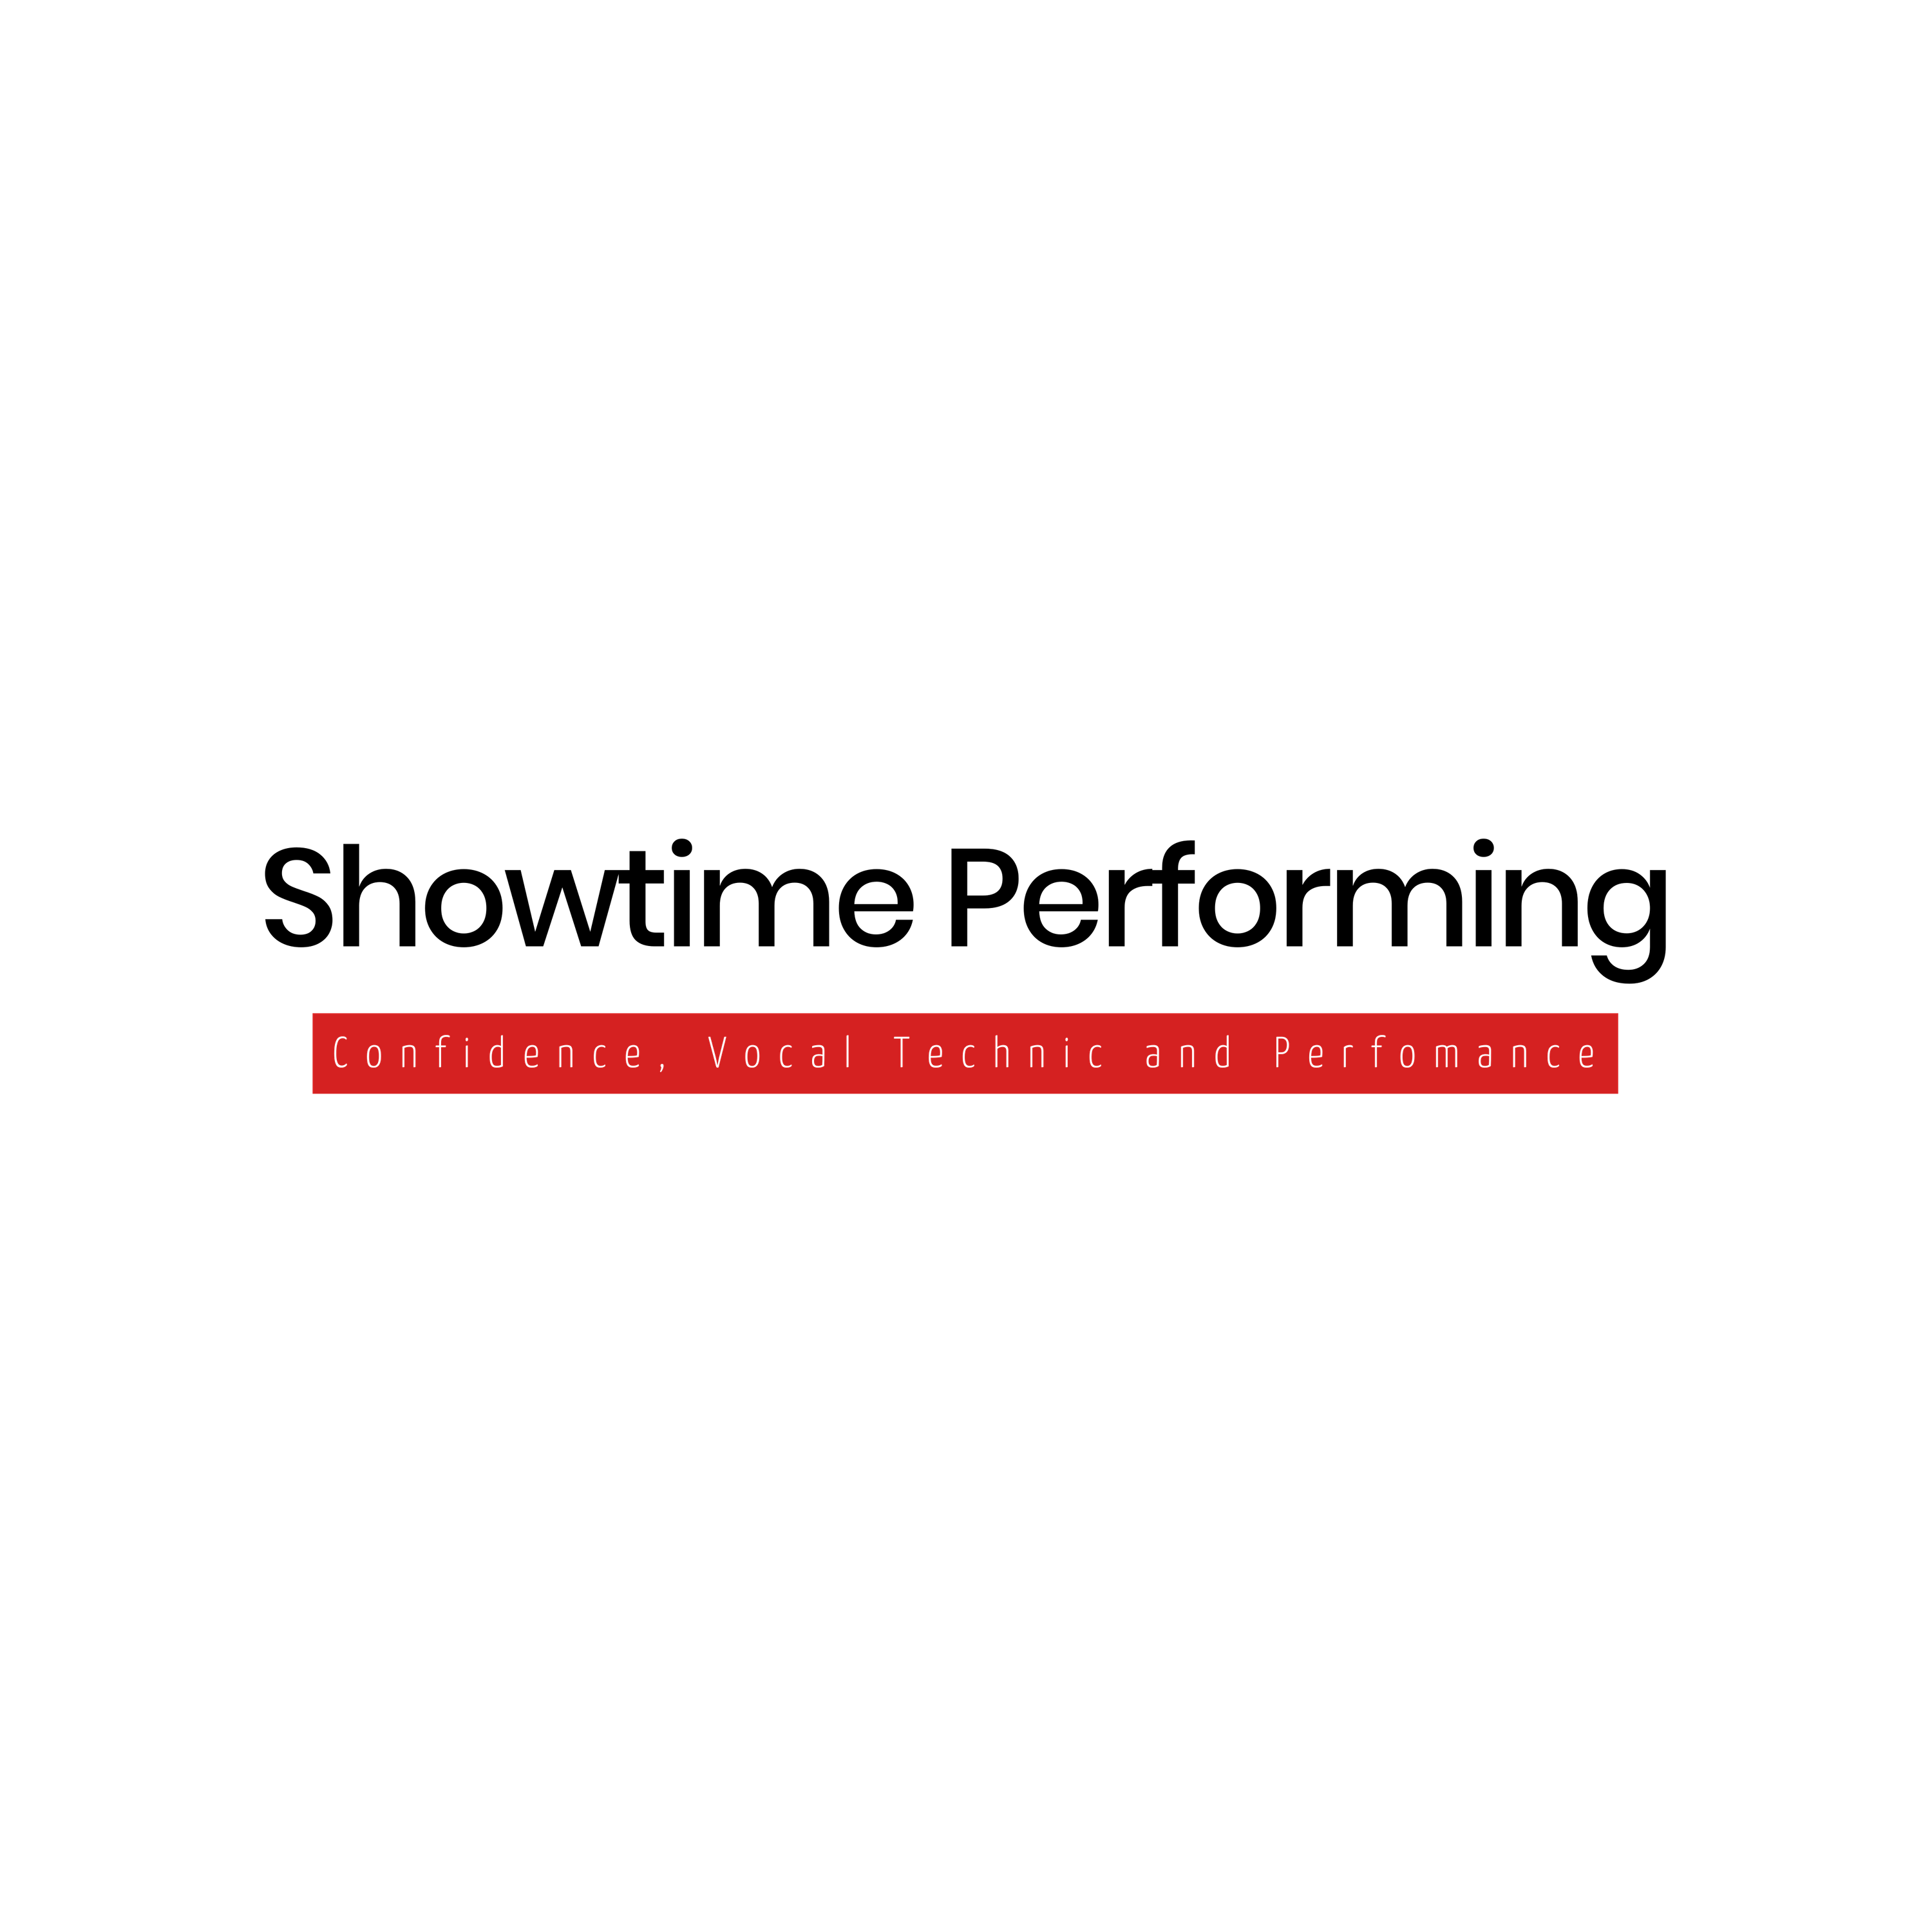 Showtime Performing